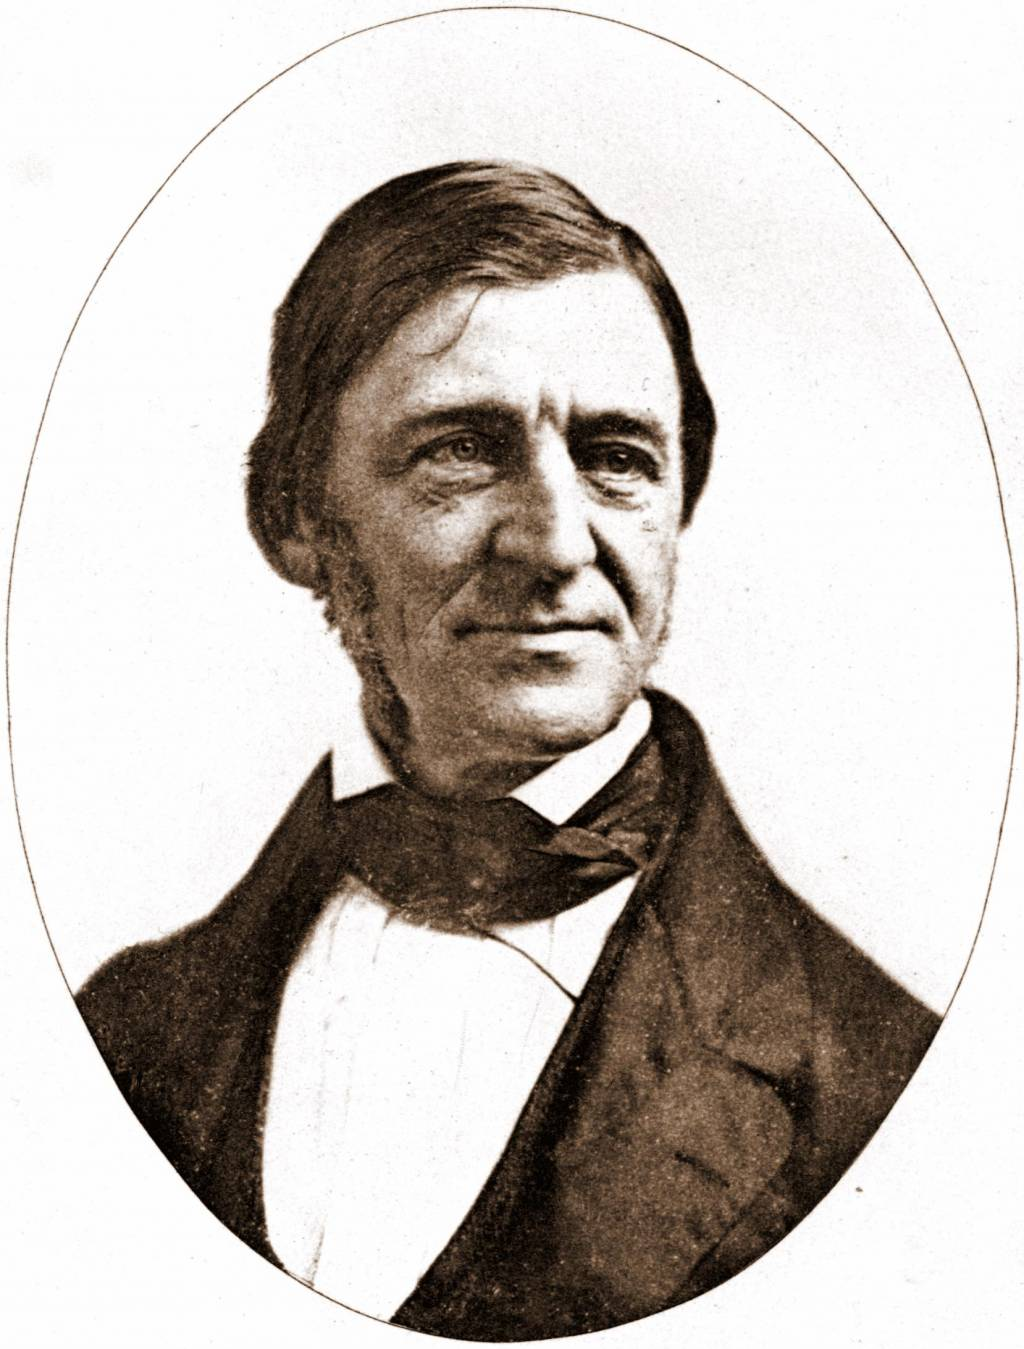 ralph waldo emerson greatest american author essay Ralph waldo emerson: american transcendentalist writer and speaker   american writing, as he influenced such major american writers as walt whitman   emerson began to express his changing ideas in written essays.